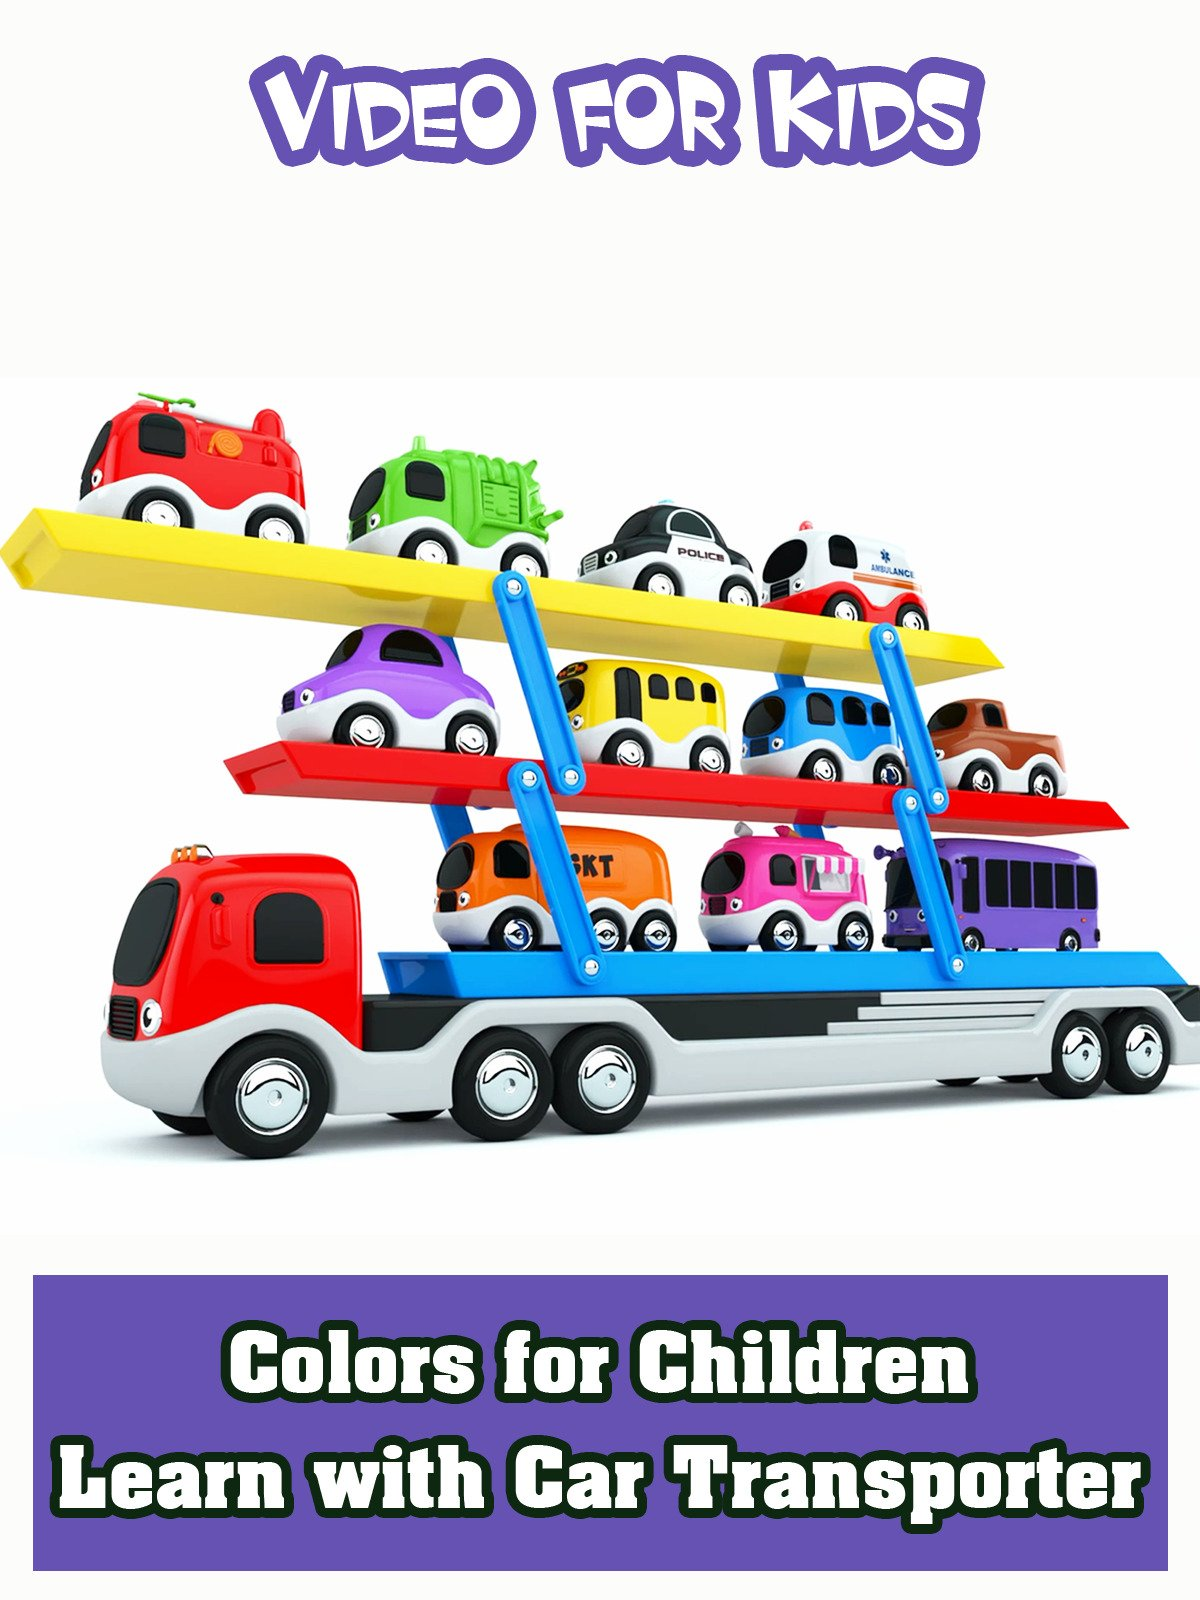 Colors for Children to Learn with Car Transporter